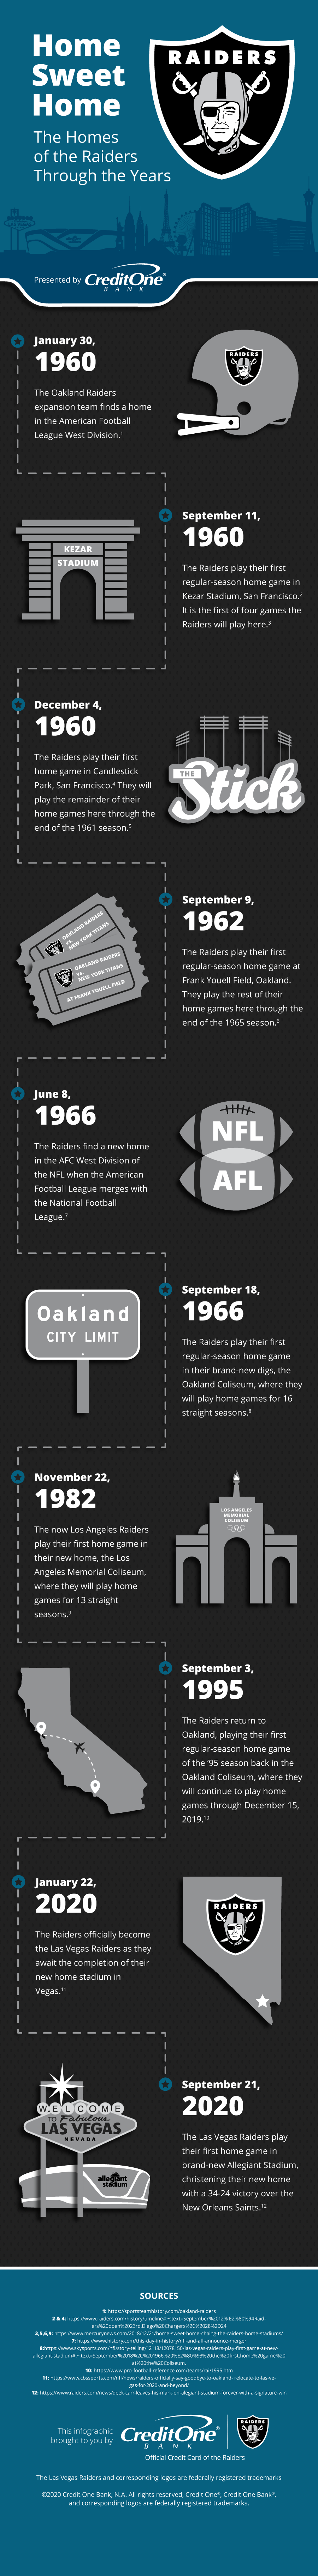 Homes of the Raiders Through the Years [Infographic]